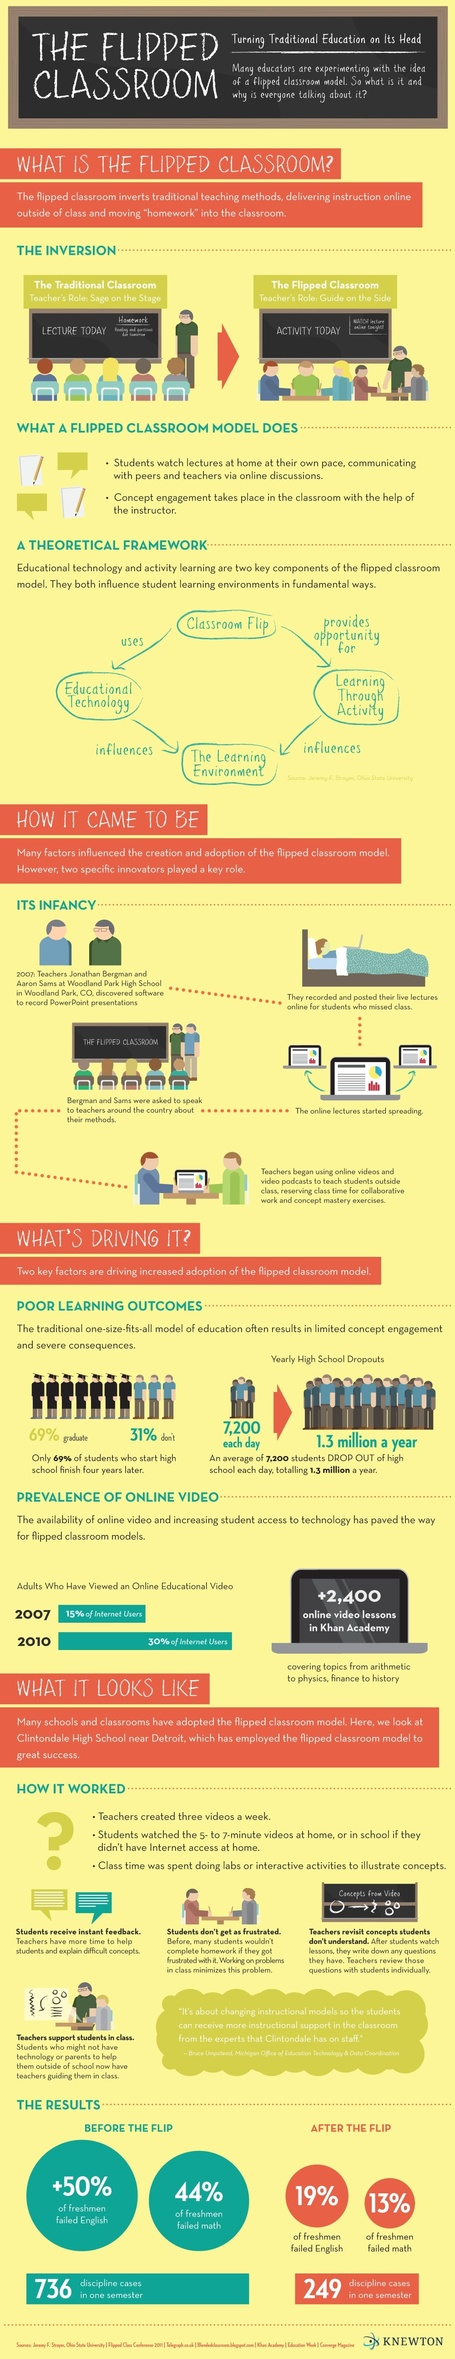 The Flipped Classroom: Turning the Traditional Classroom on its Head | Edtech PK-12 | Scoop.it